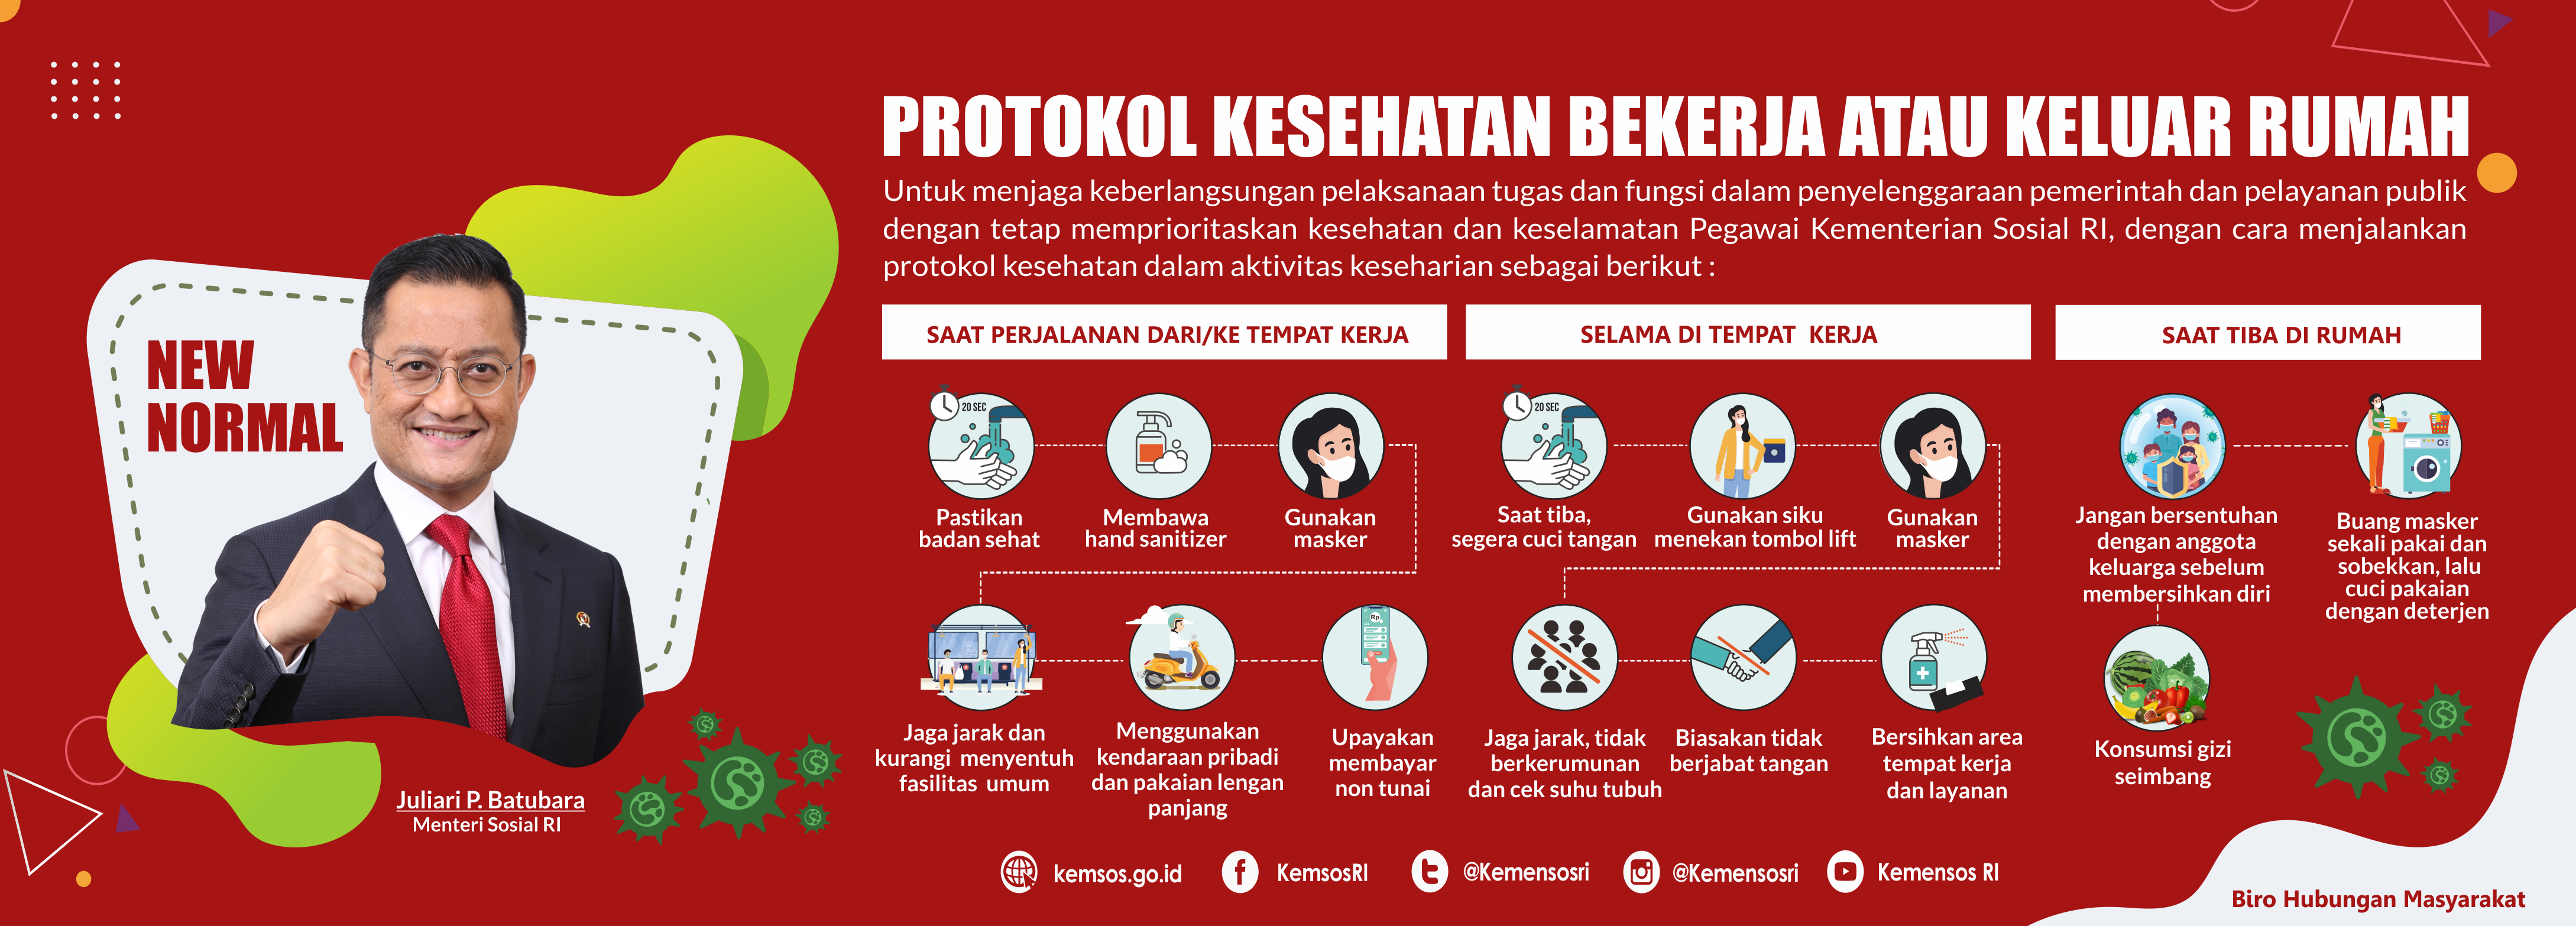 Protokol Kesehatan New Normal